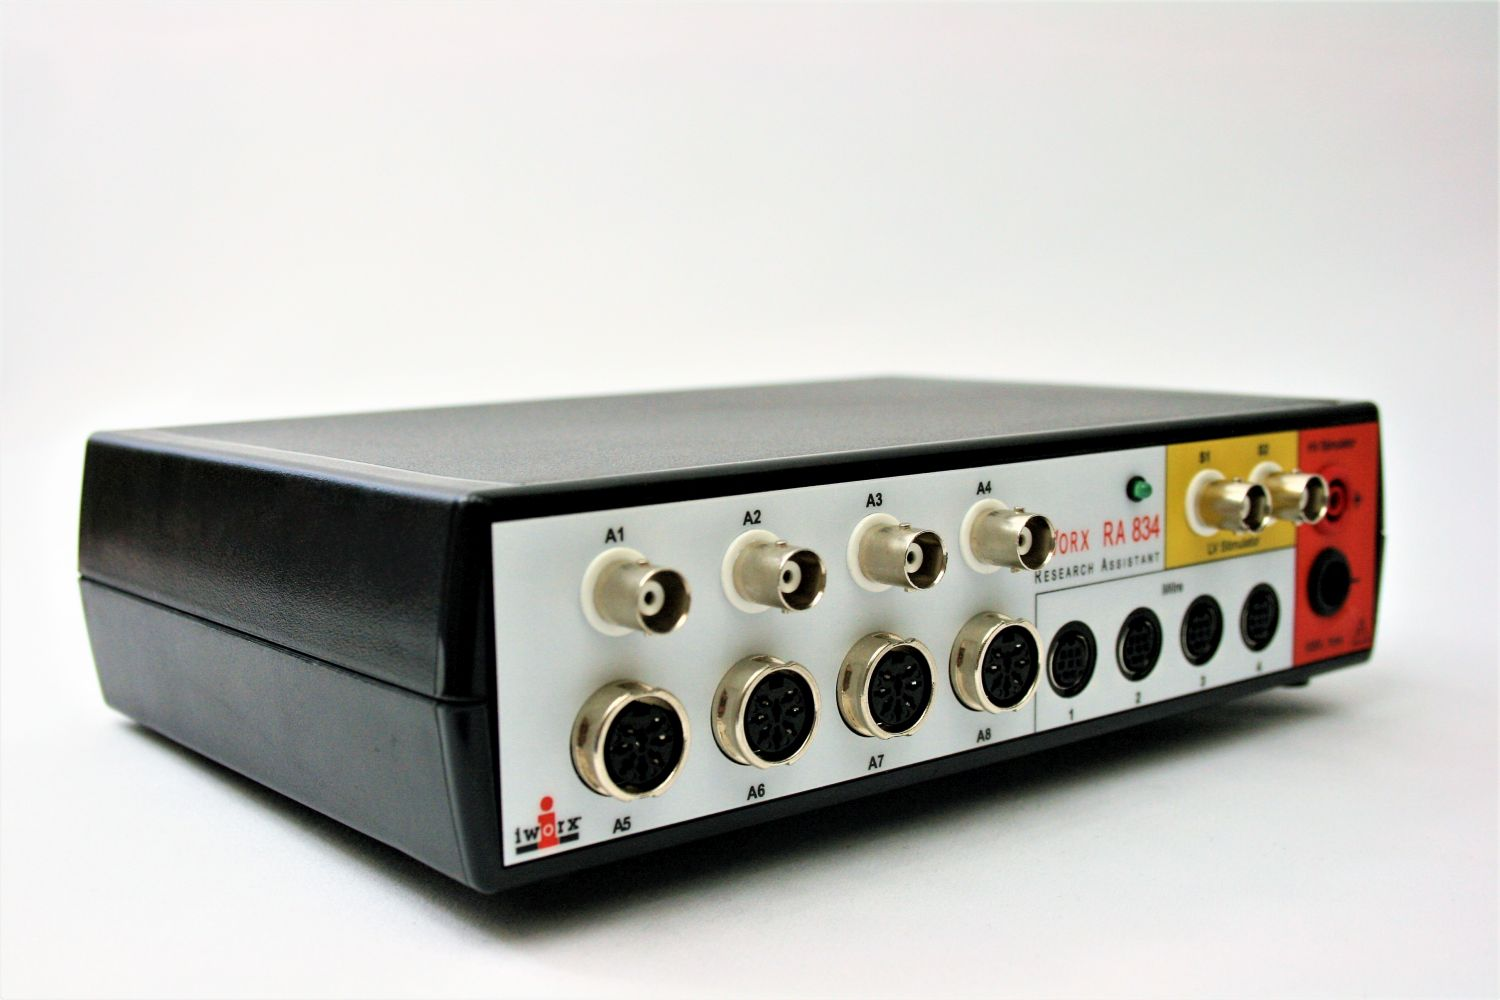 IX-RA-834 Multichannel expandable recorder